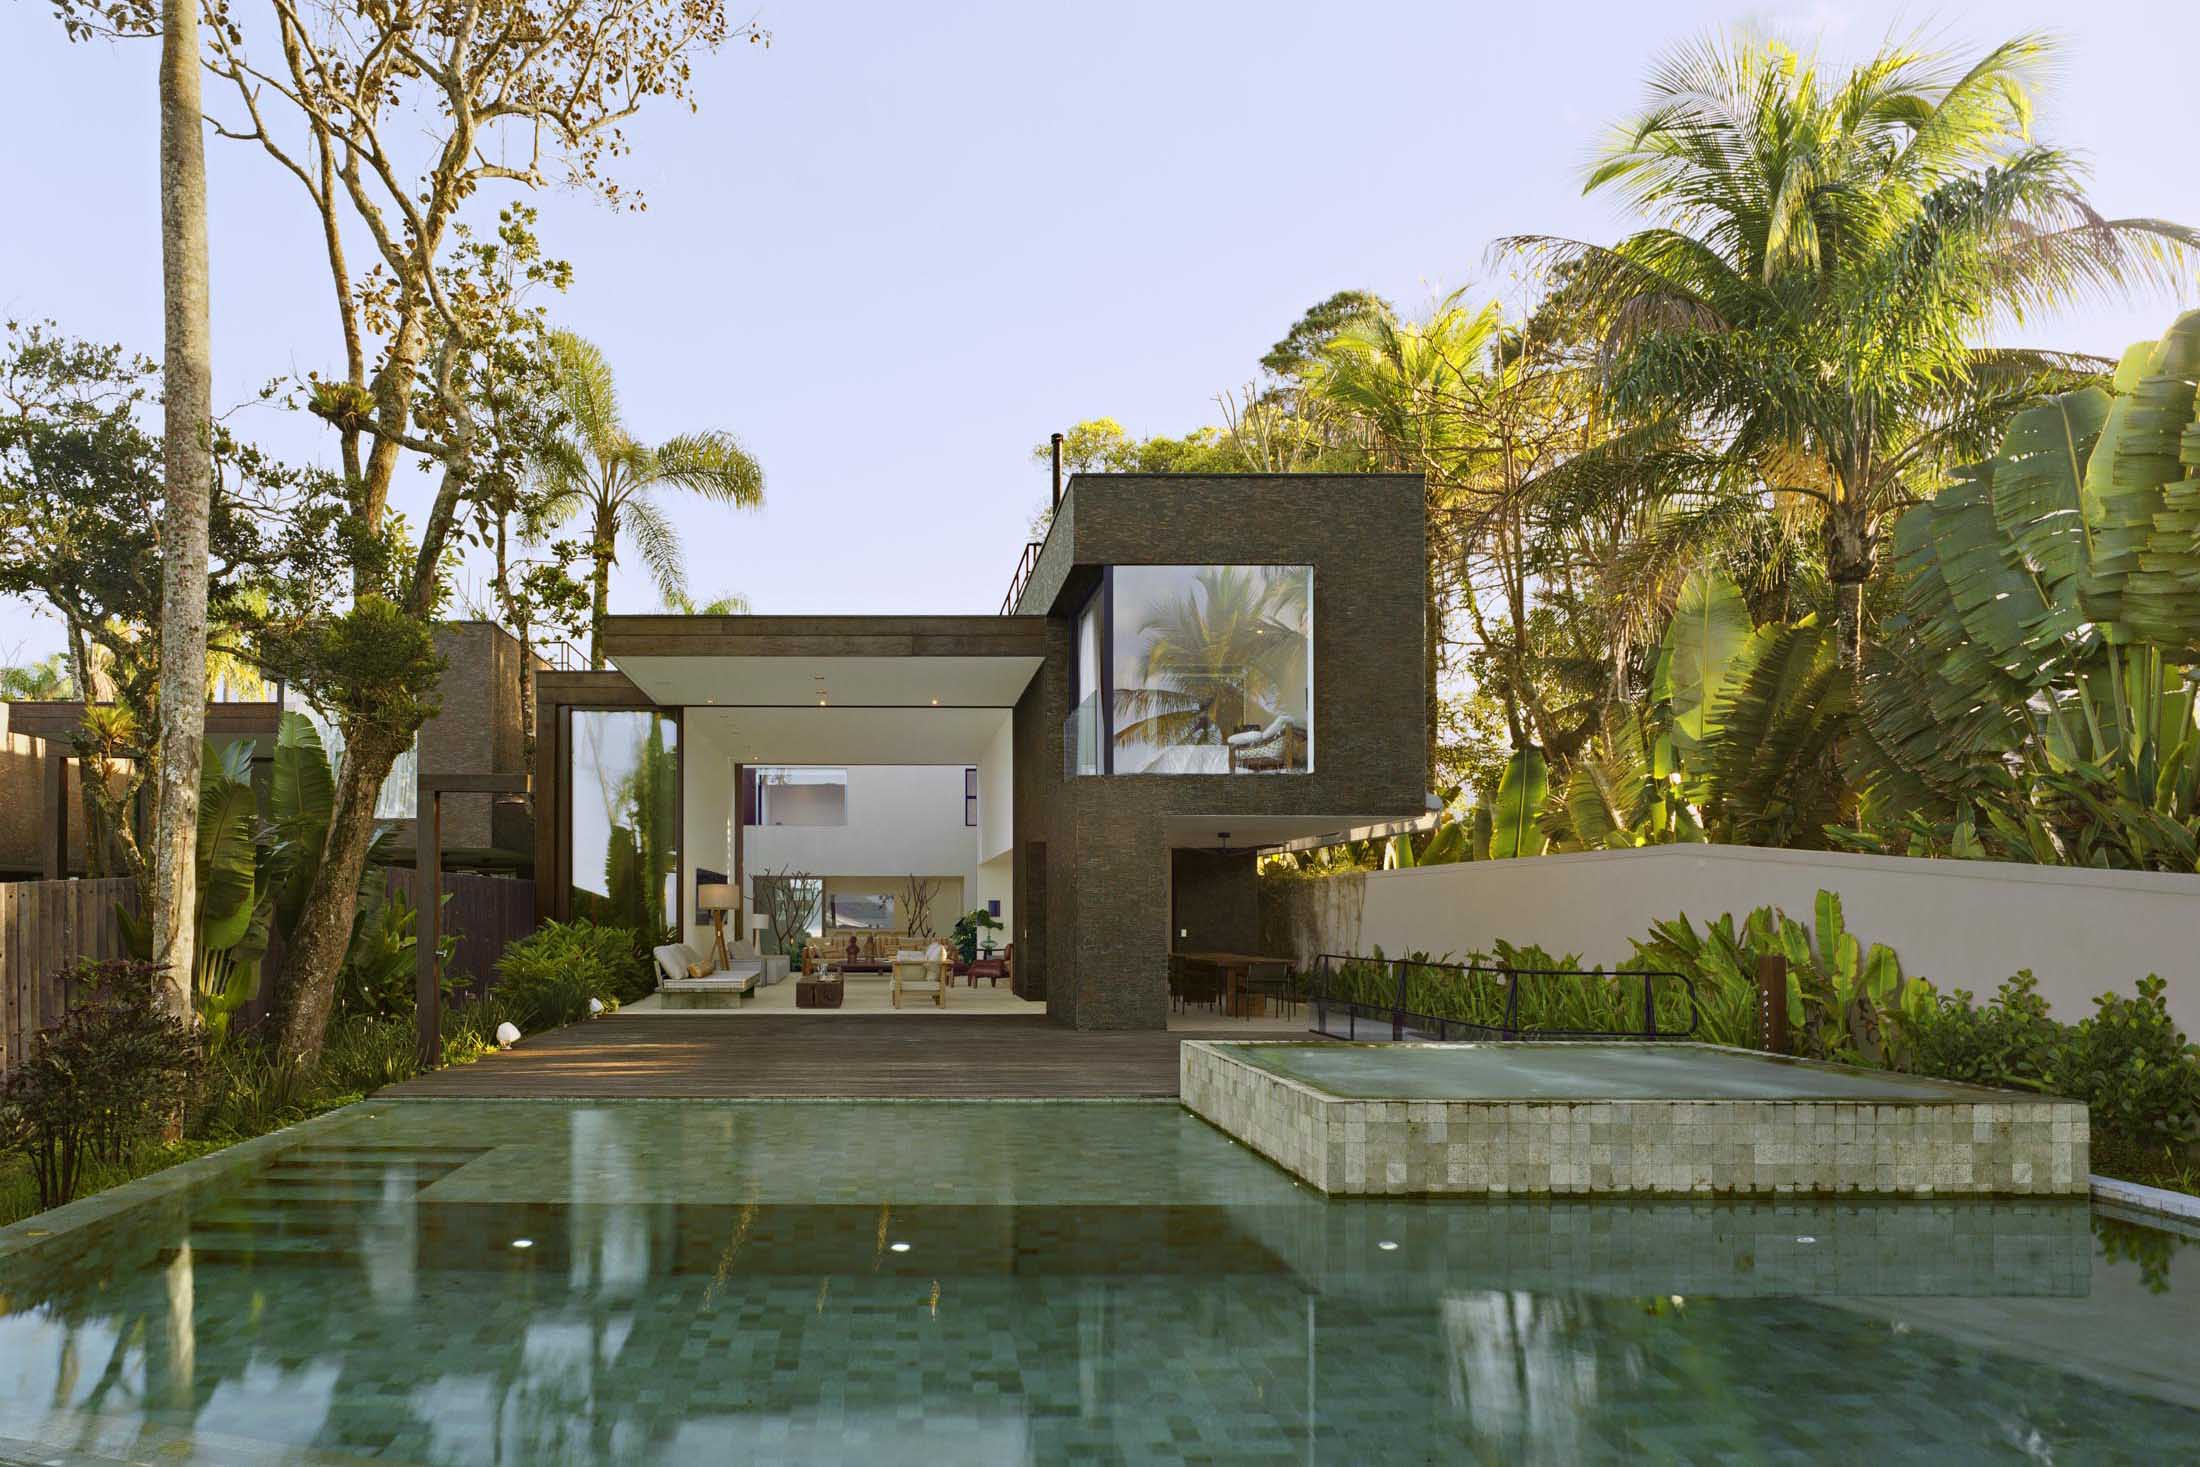 Tour a Breathtaking Family Compound in Brazil's Vacation Hotspot - Bloomberg